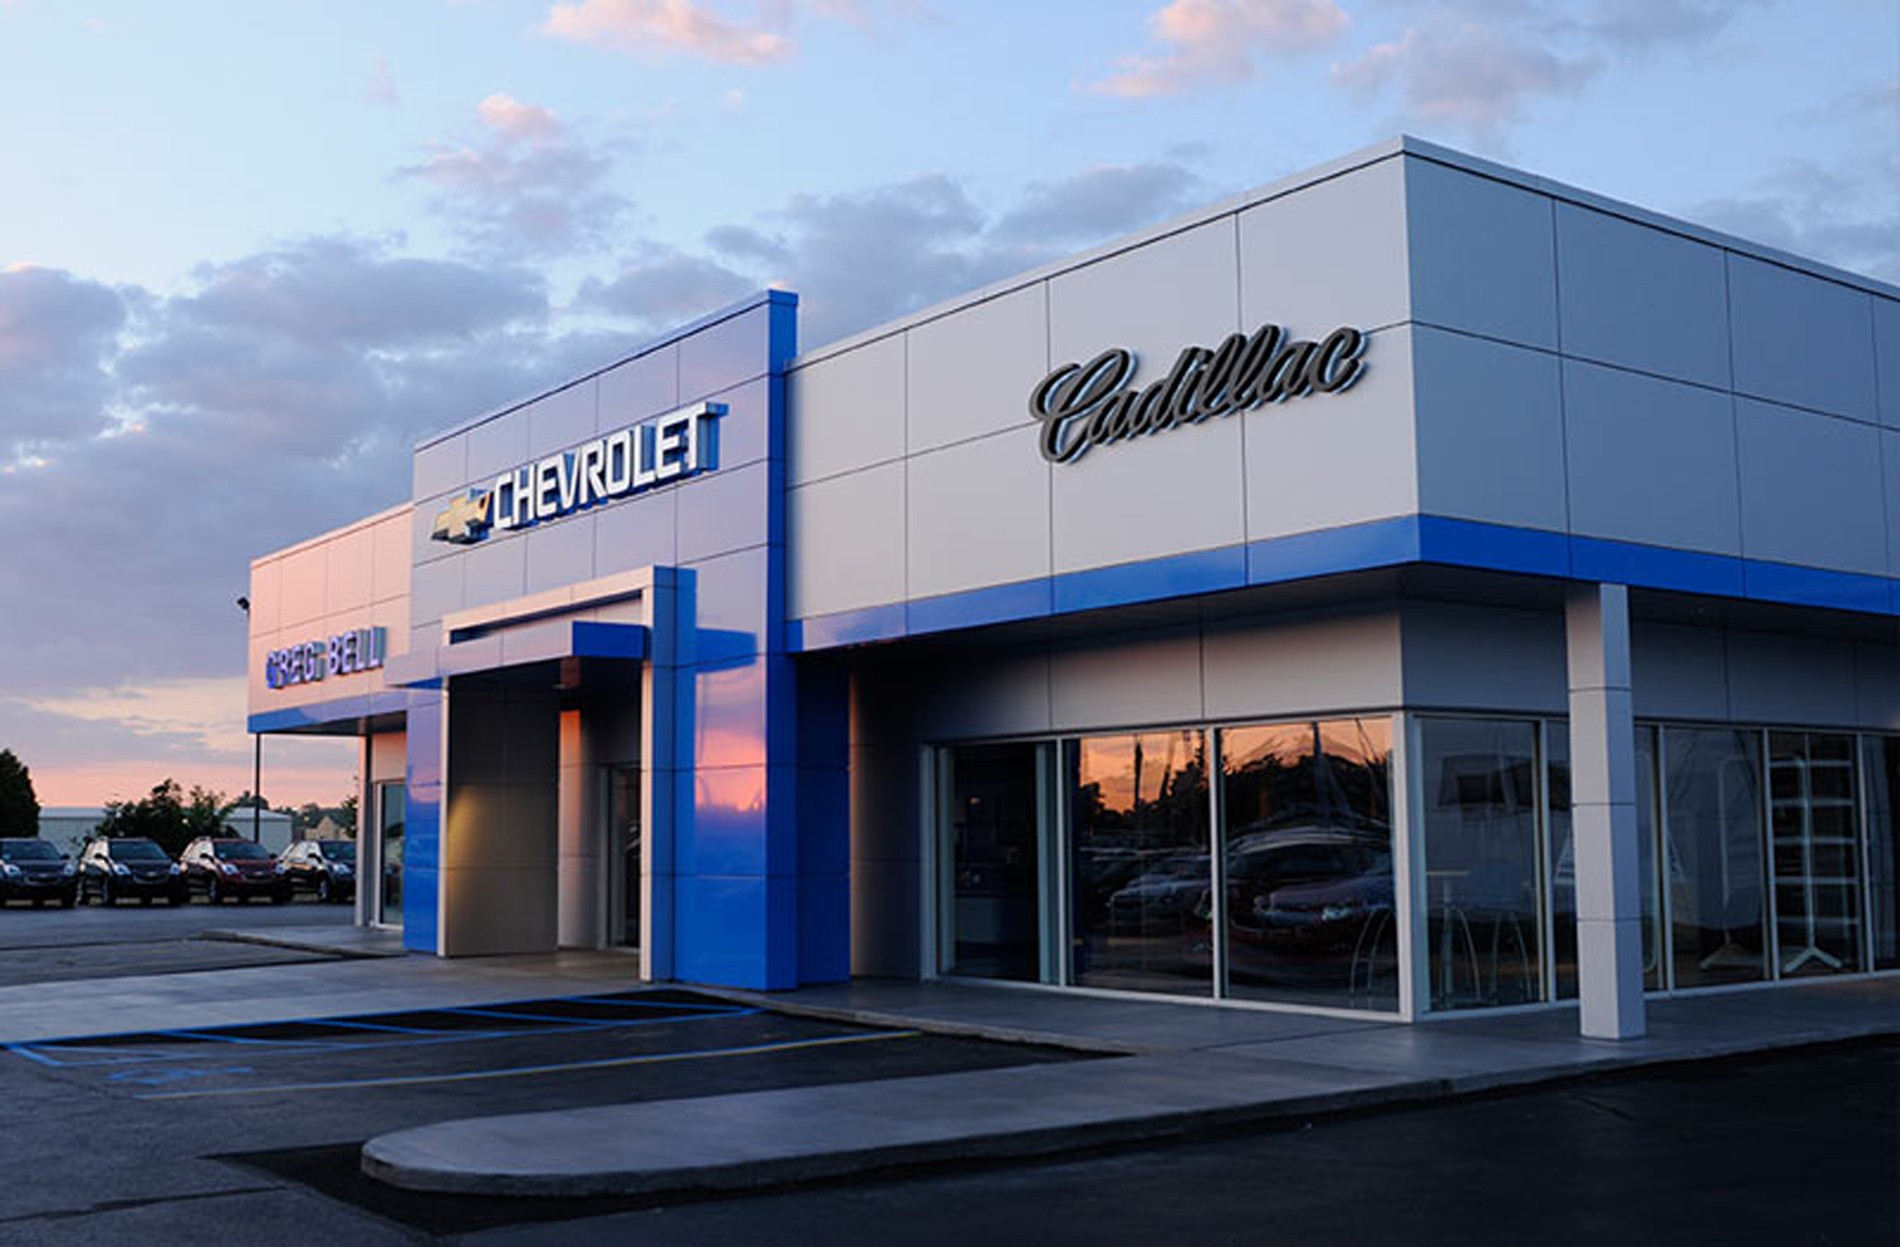 Greg Bell Chevrolet: Corporate